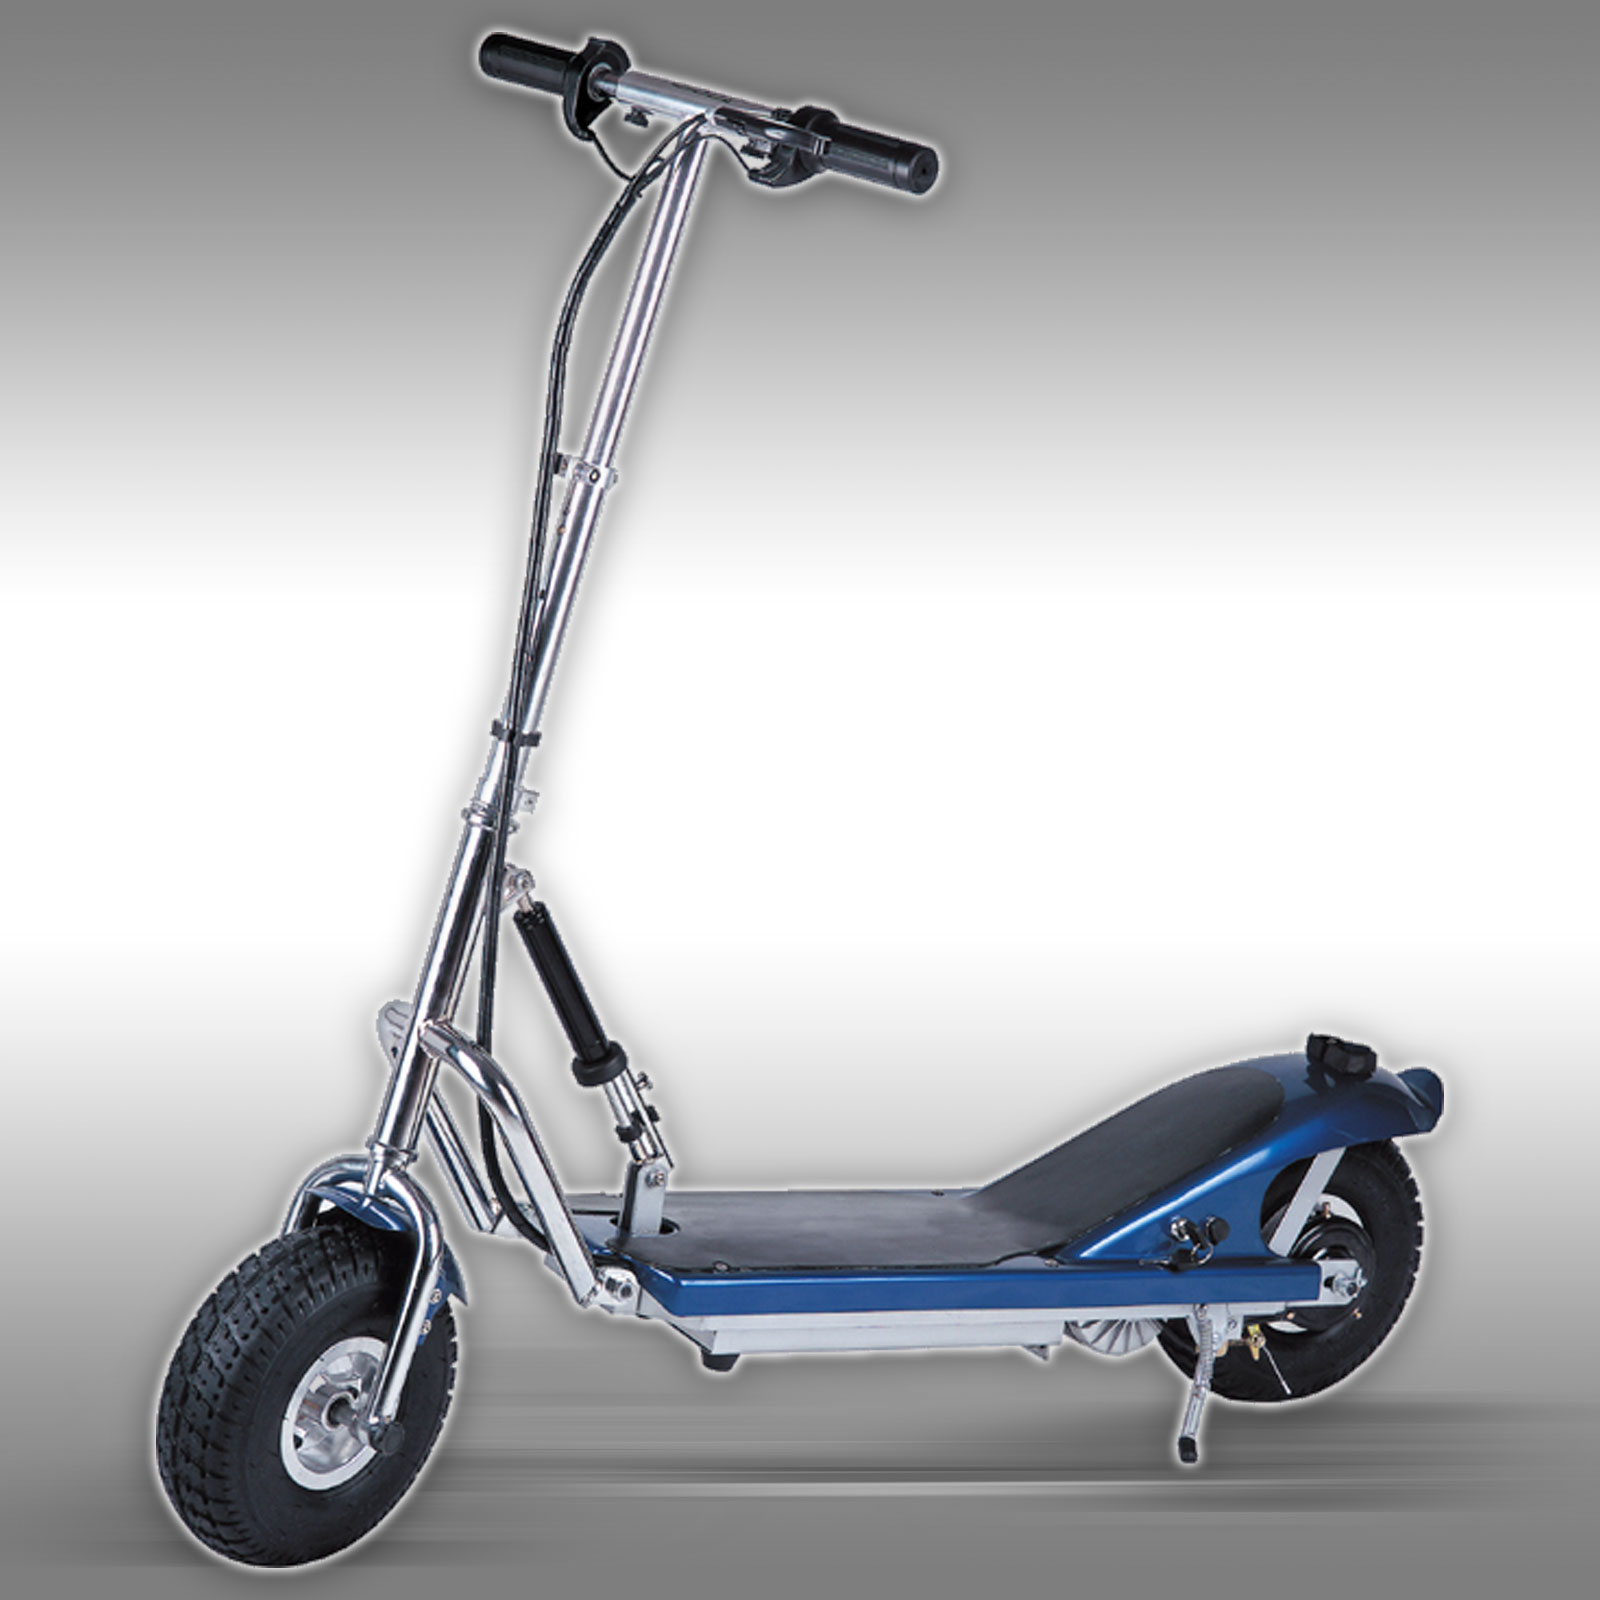 elektro scooter e scooter elektroroller city roller dr24300 blau ebay. Black Bedroom Furniture Sets. Home Design Ideas